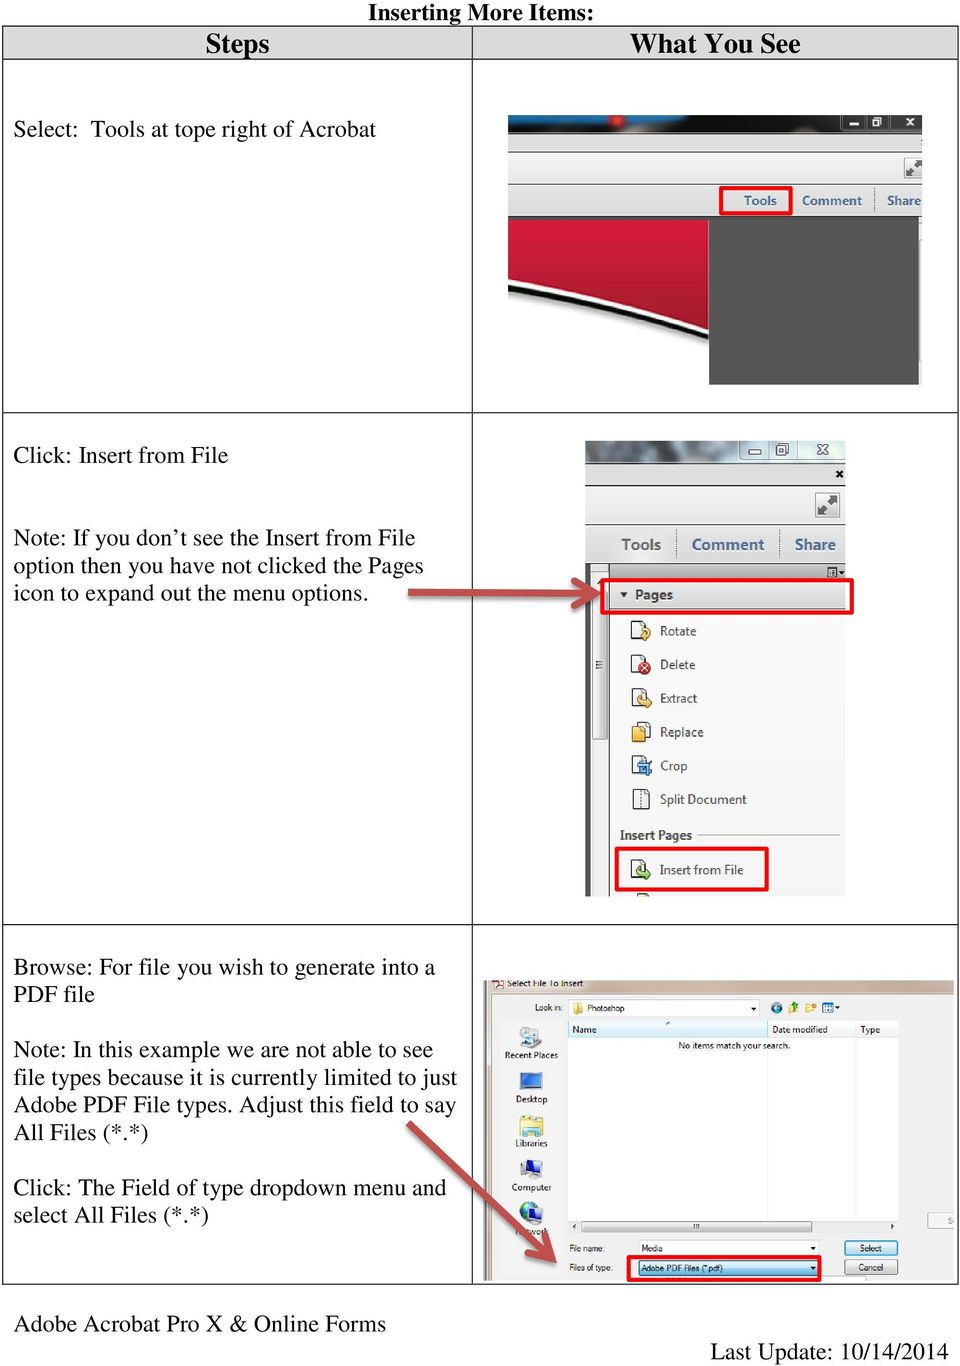 Browse: For file you wish to generate into a PDF file Note: In this example we are not able to see file types because it is